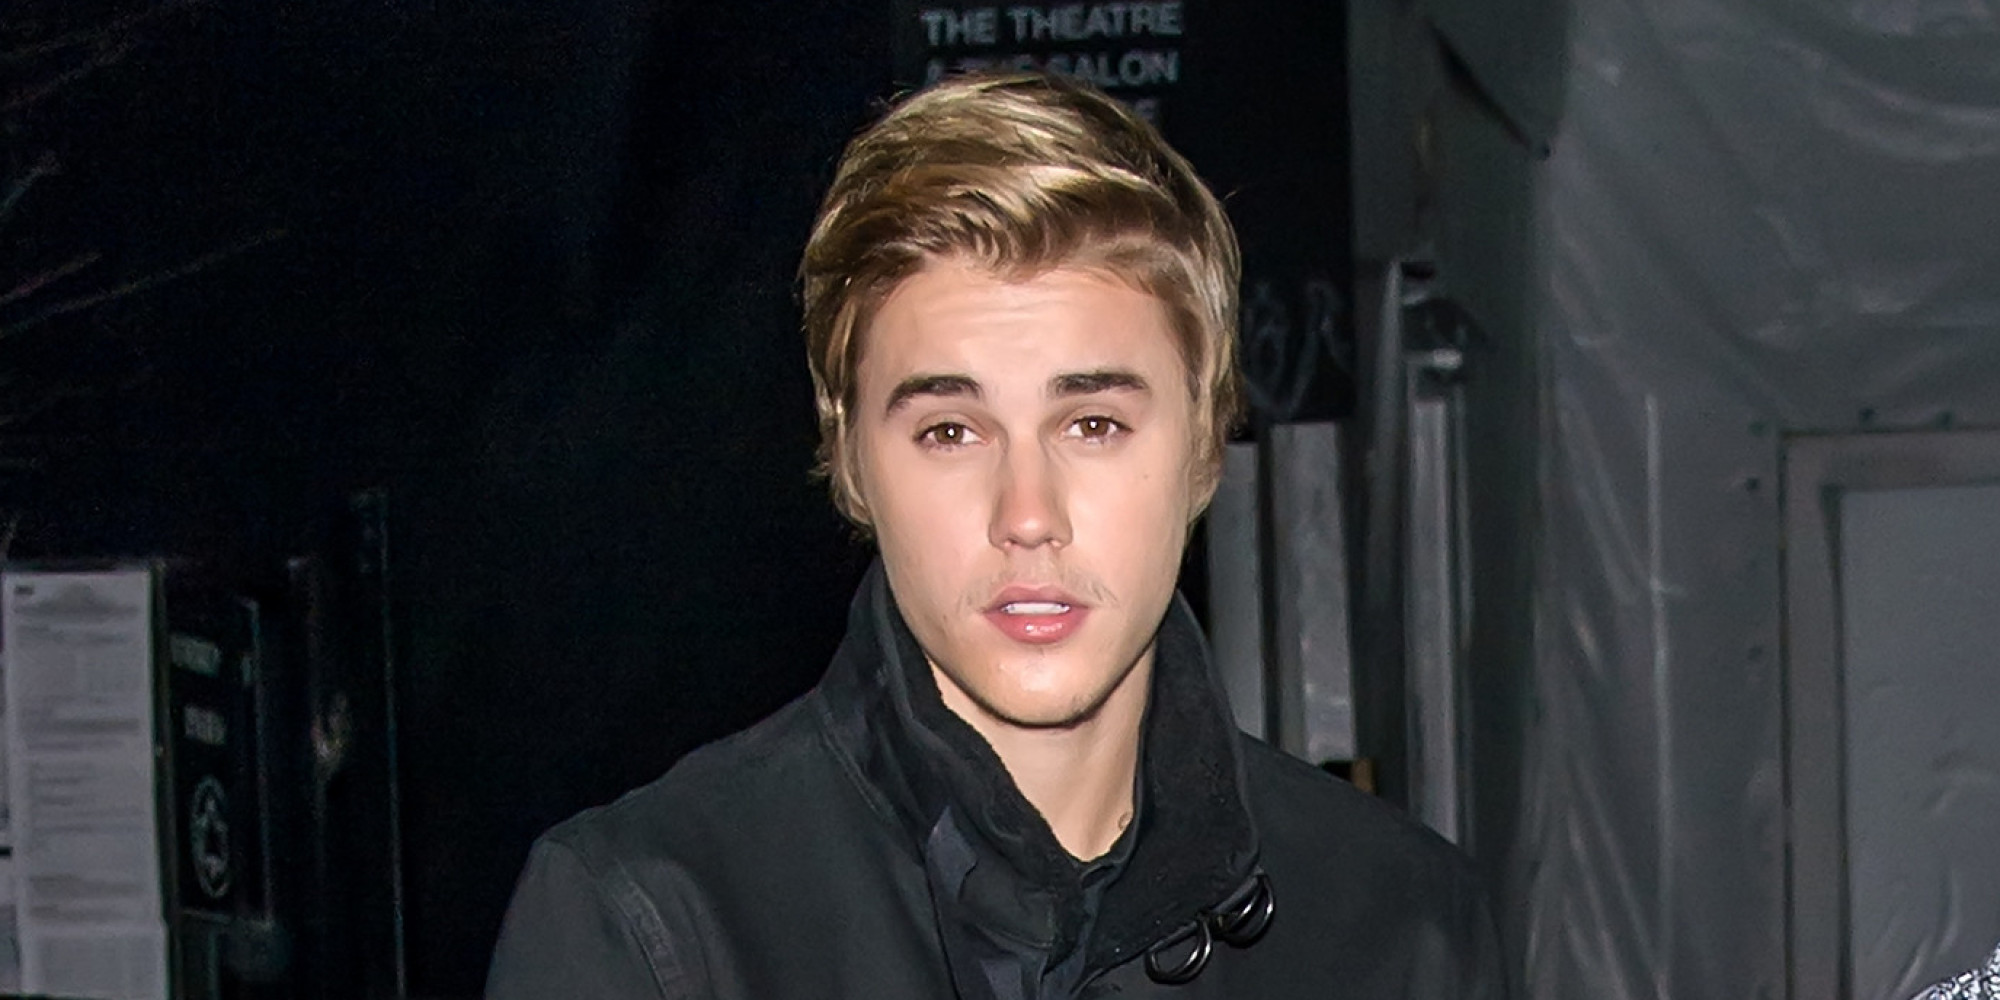 Justin Bieber Picks Up The Dinner Tab For NYPD Officers : HuffPost